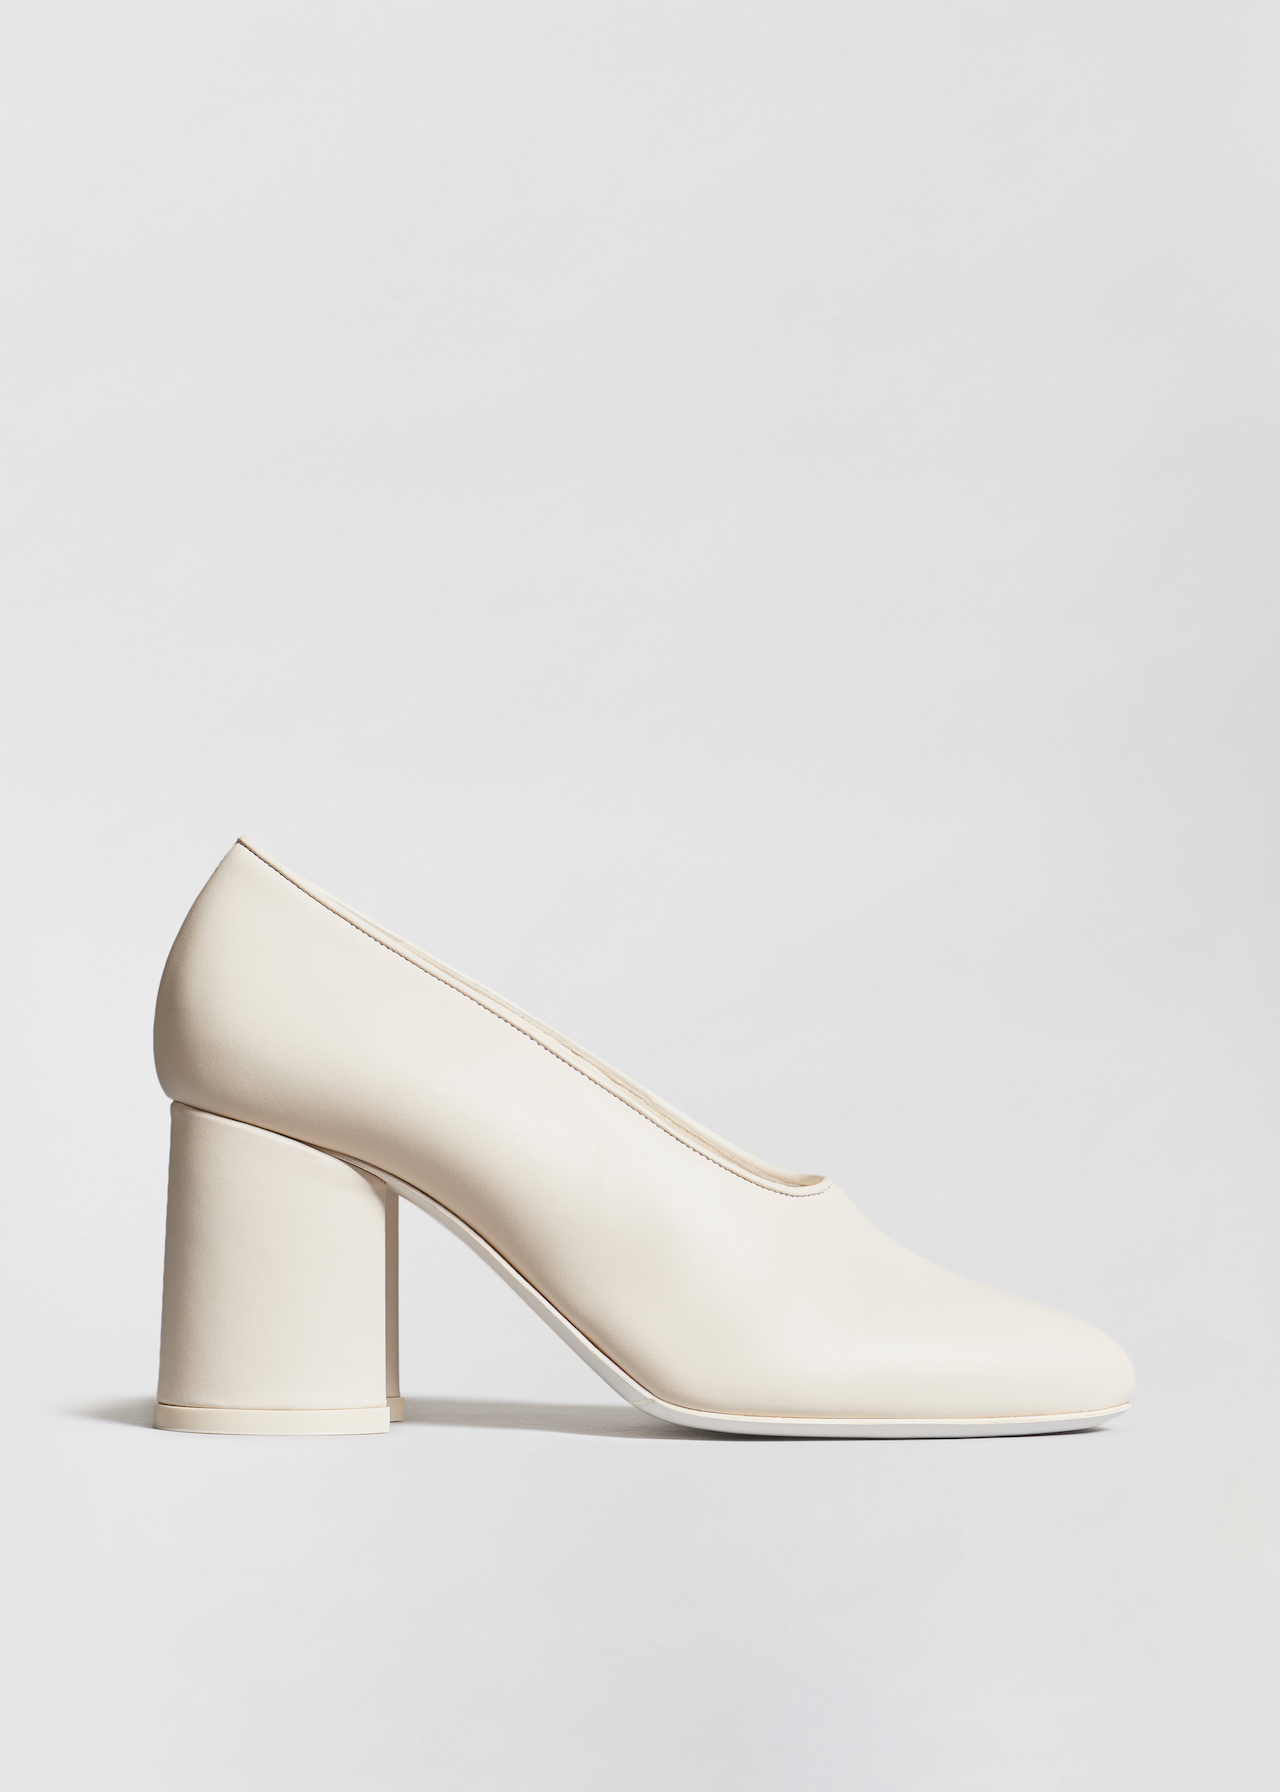 Classic Pump in Smooth Leather - Black in Ivory by Co Collections